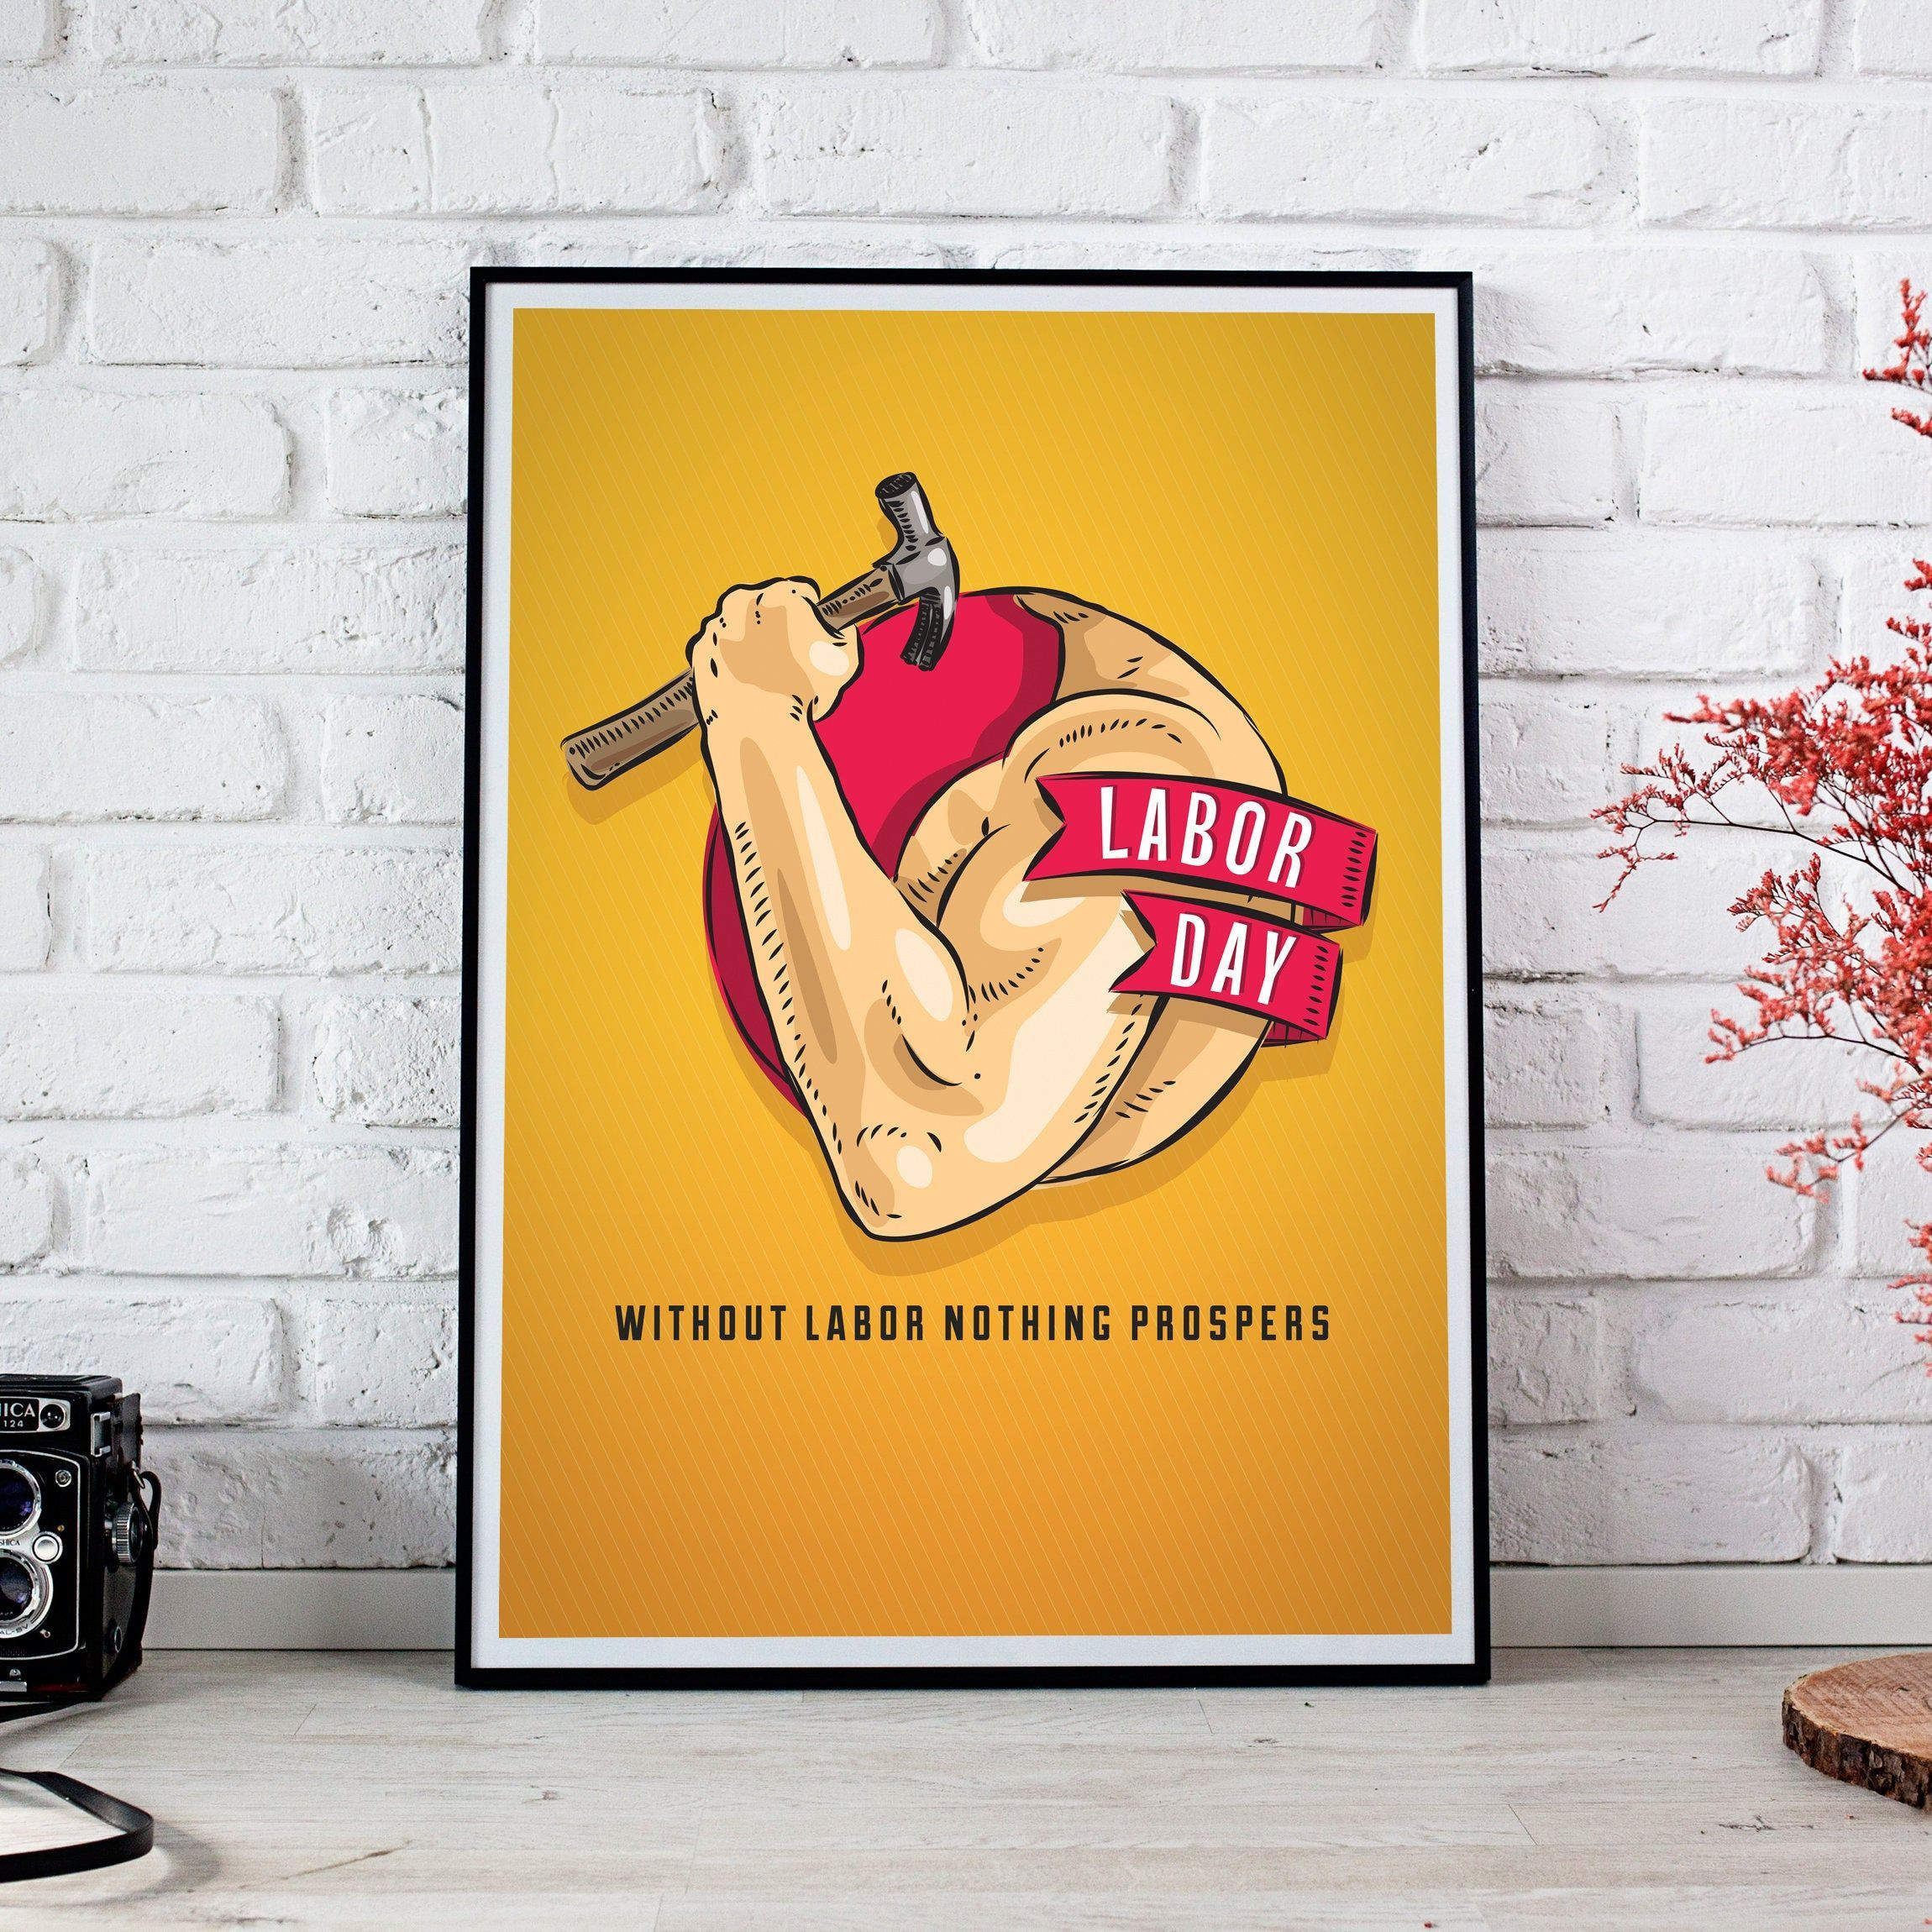 Labor Day Quote Poster Printable, Labor Day Worker Print, Labor Day Room Decoration, 1st May Print - Wall Art Decor, Instant Download by DigitPrints on Etsy #labordayquotes Labor Day Quote Poster Printable, Labor Day Worker Print, Labor Day Room Decoration, 1st May Print - Wall Art Decor, Instant Download by DigitPrints on Etsy #labordayquotes